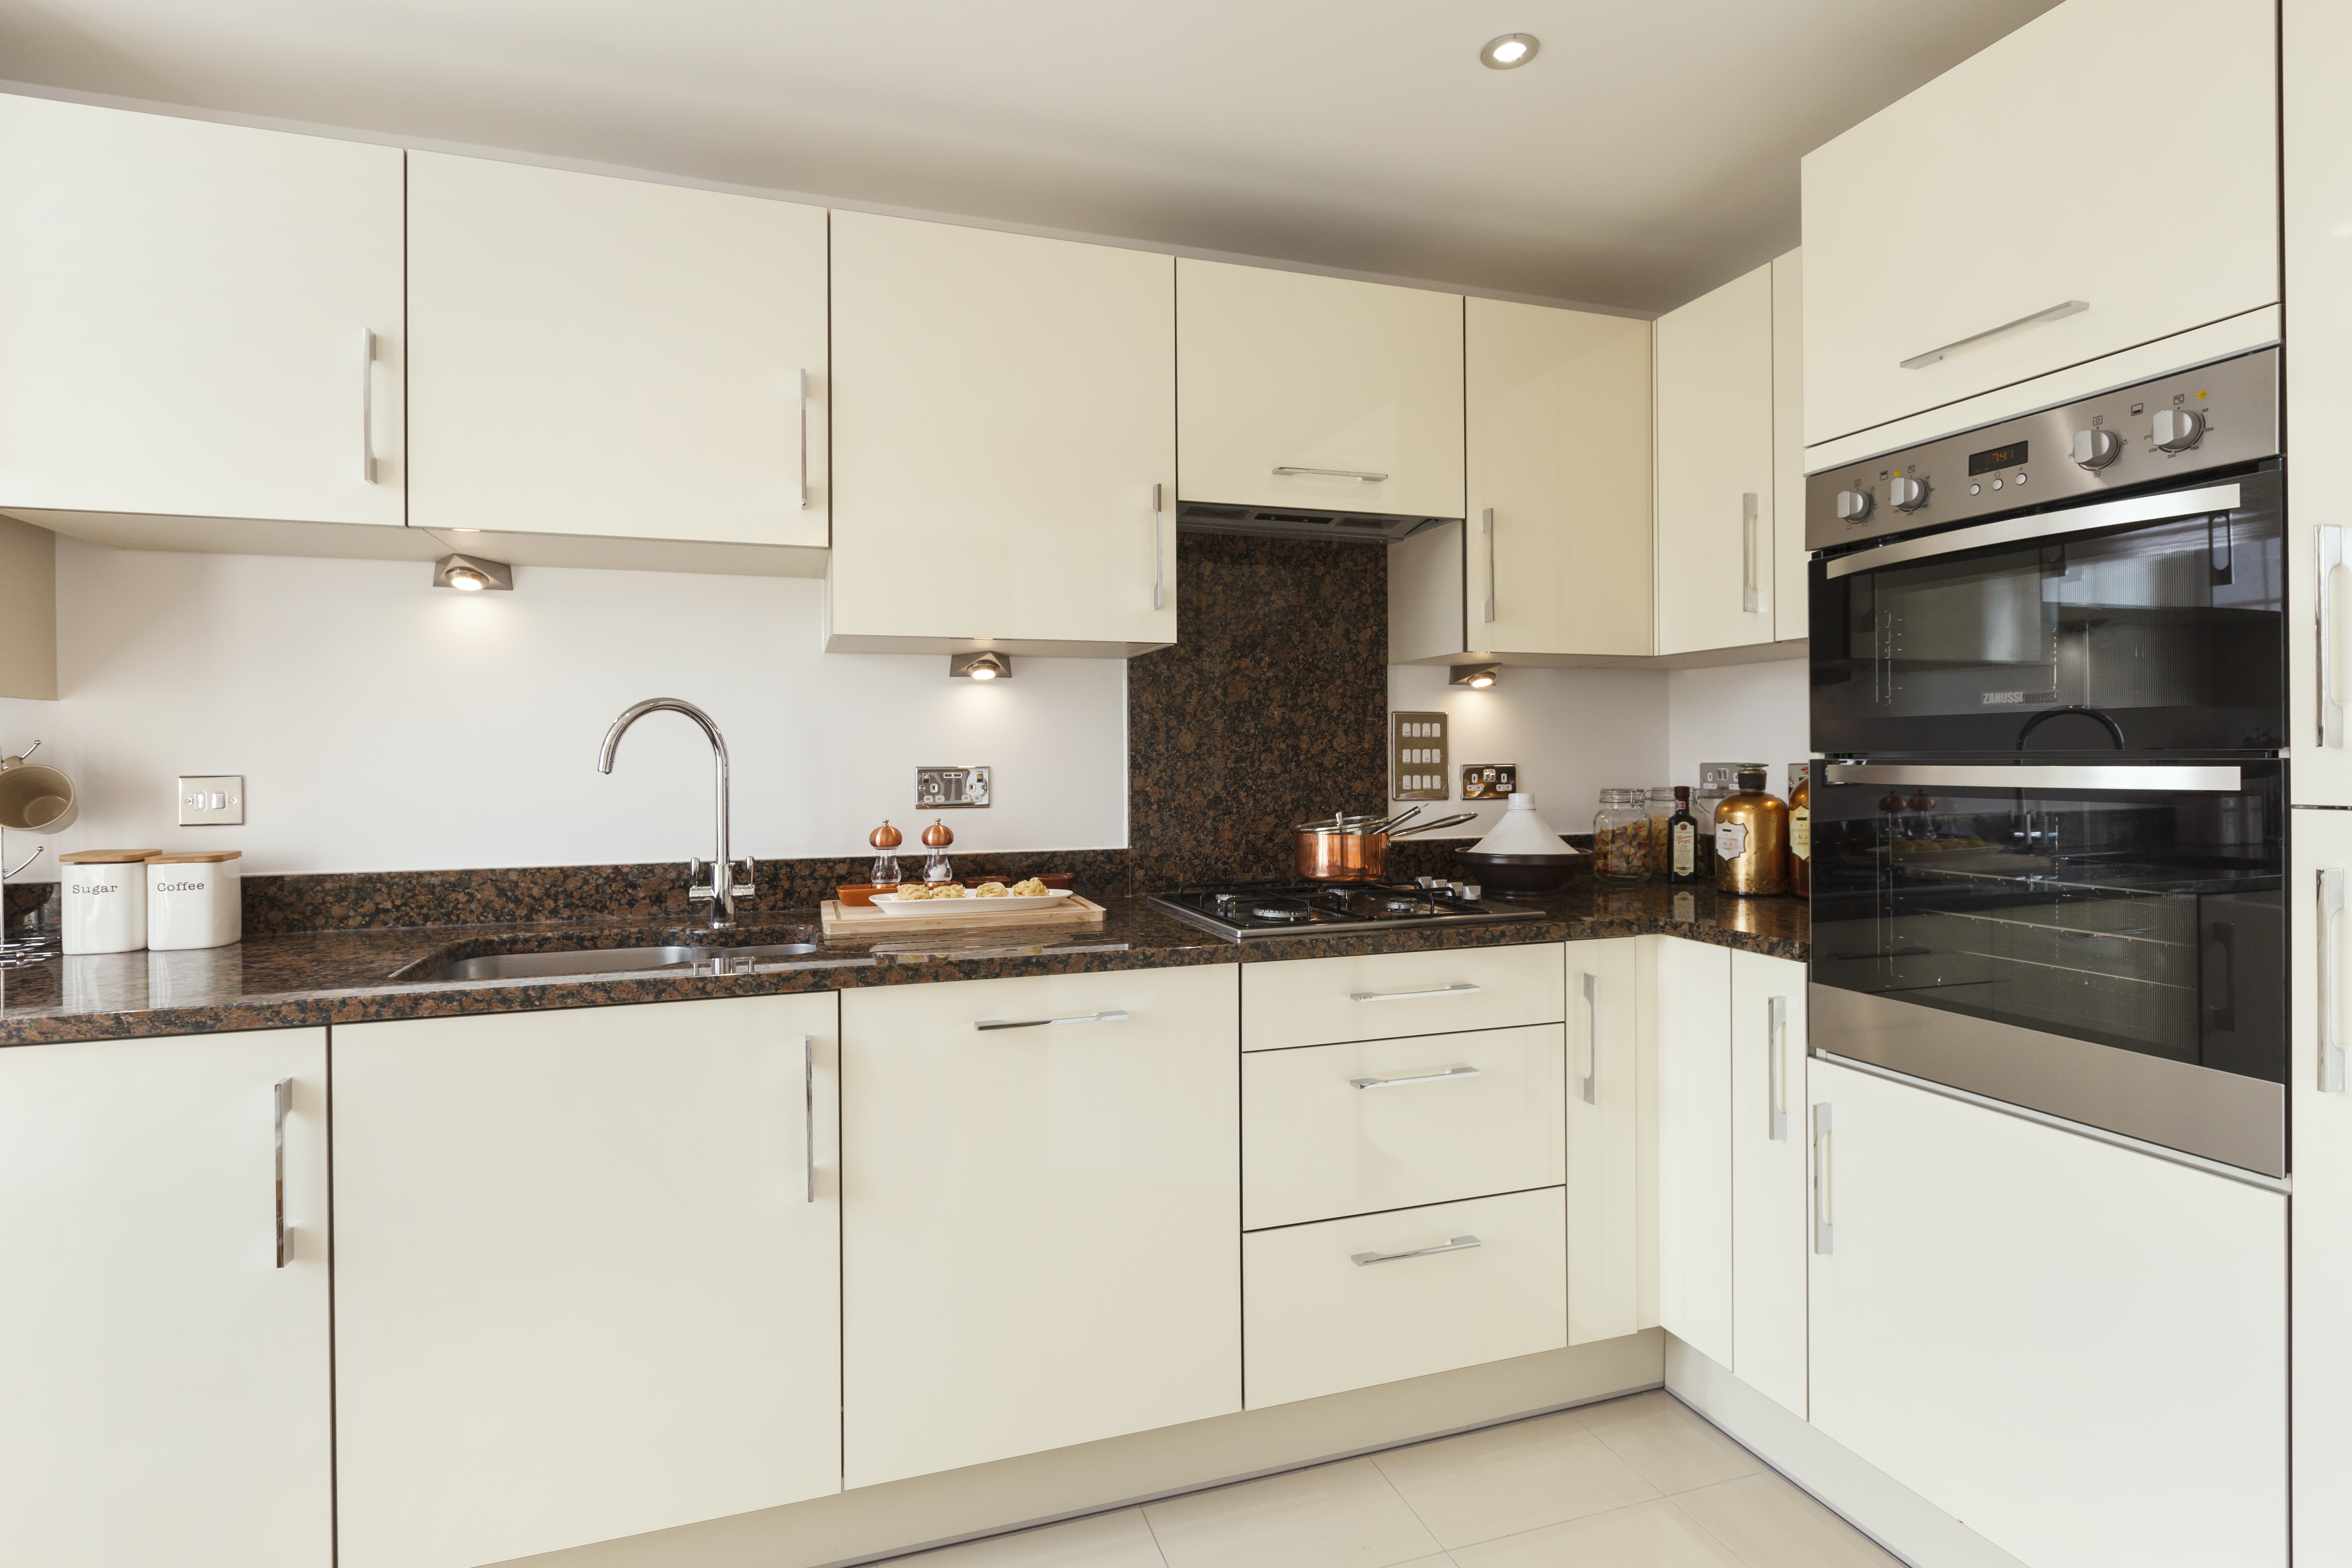 Use for Wardbury - TW SC_Barley Grange_BP30_Ashton G_Kitchen 2